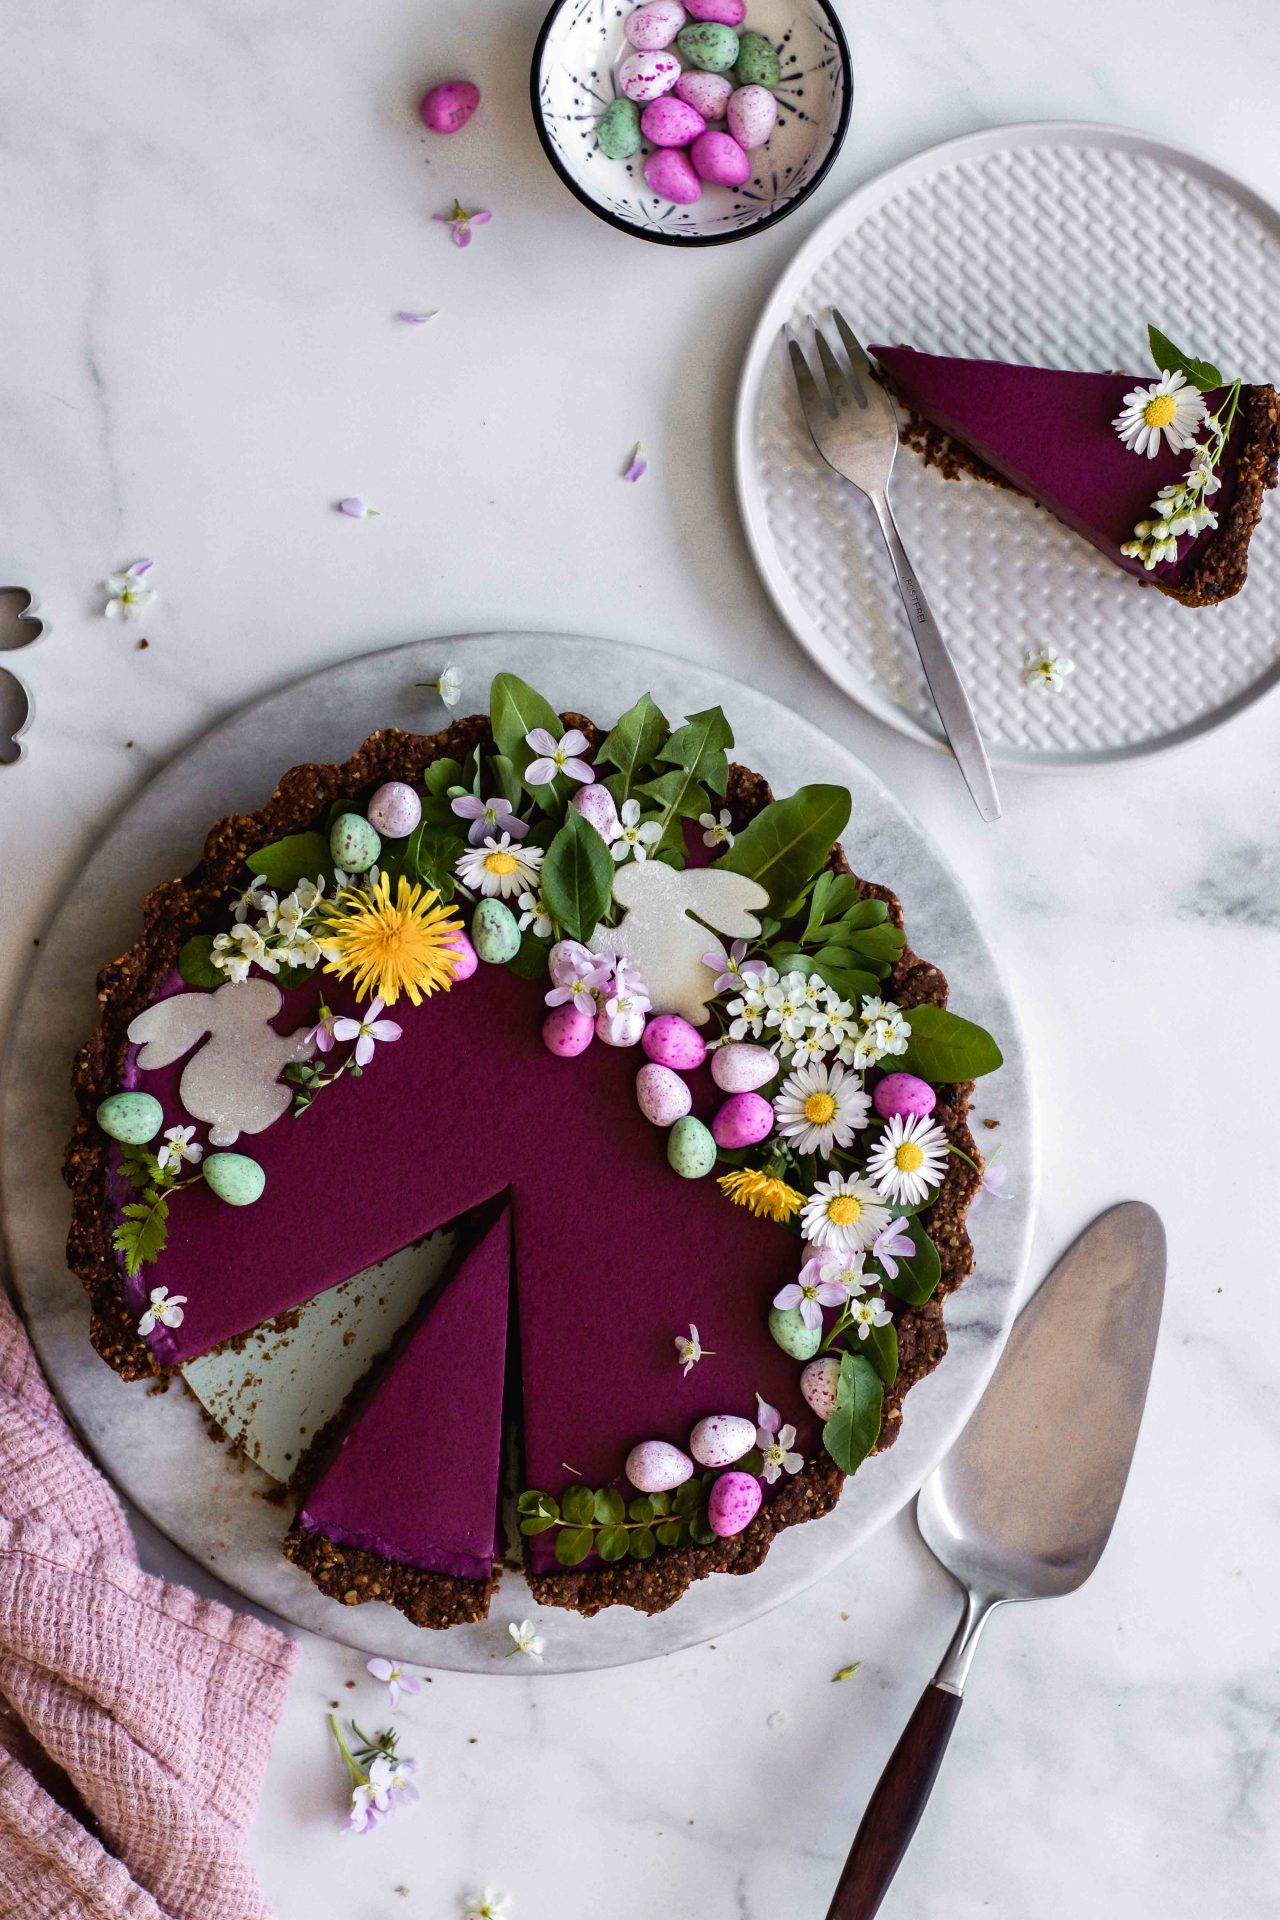 Heidelbeer-Tarte mit Schoko-Walnuss-Boden | vegan, glutenfrei | Flowers in the Salad